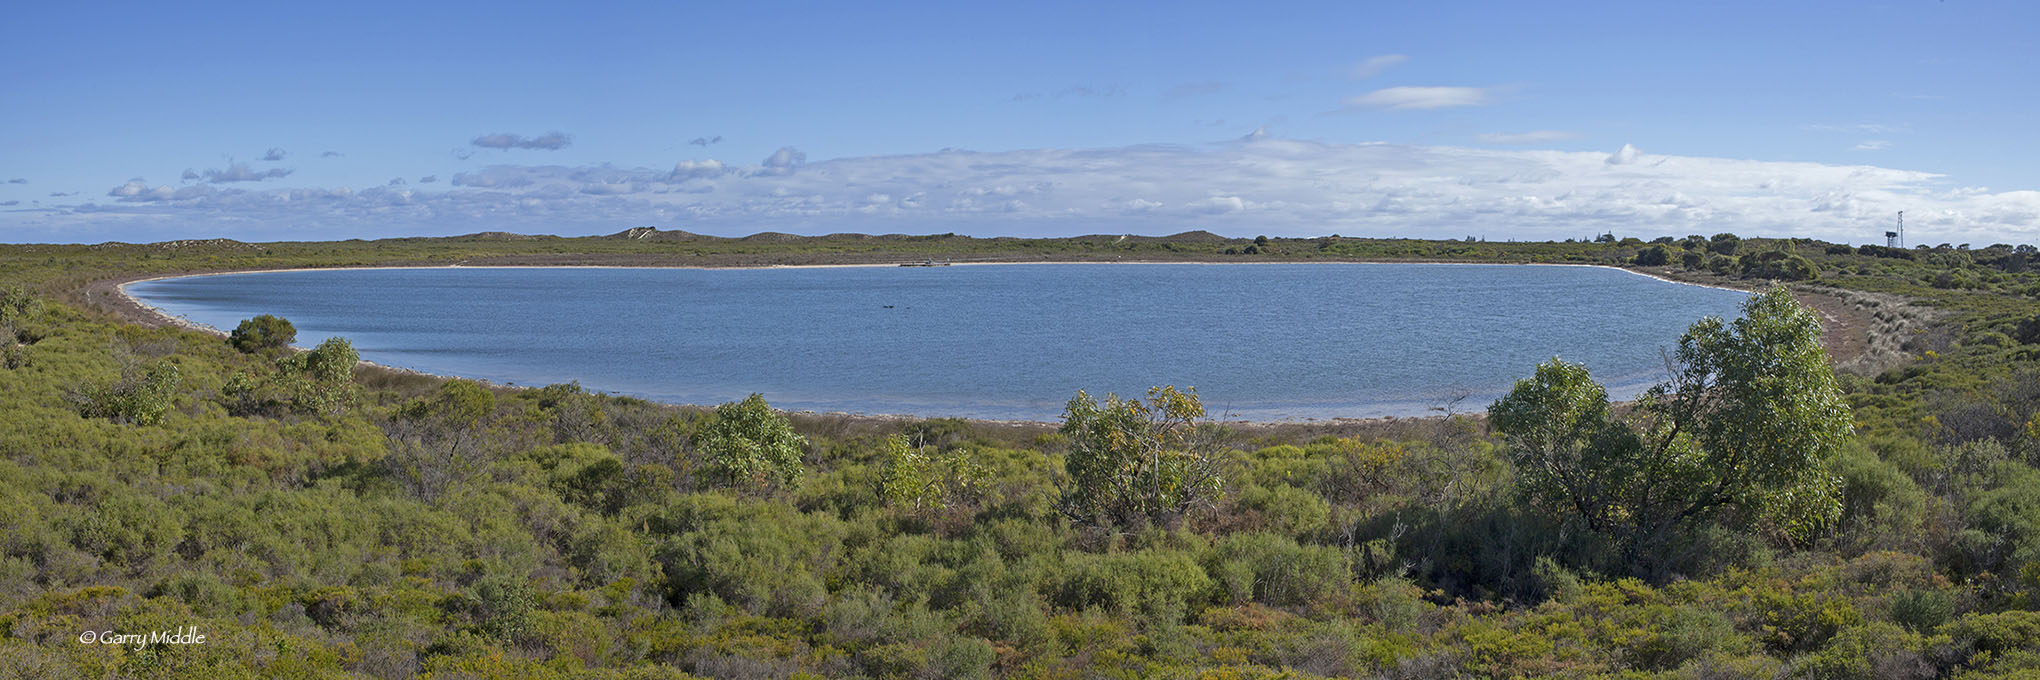 Plate 3: Lake Thetis (Cervantes) – wetland of high conservation value